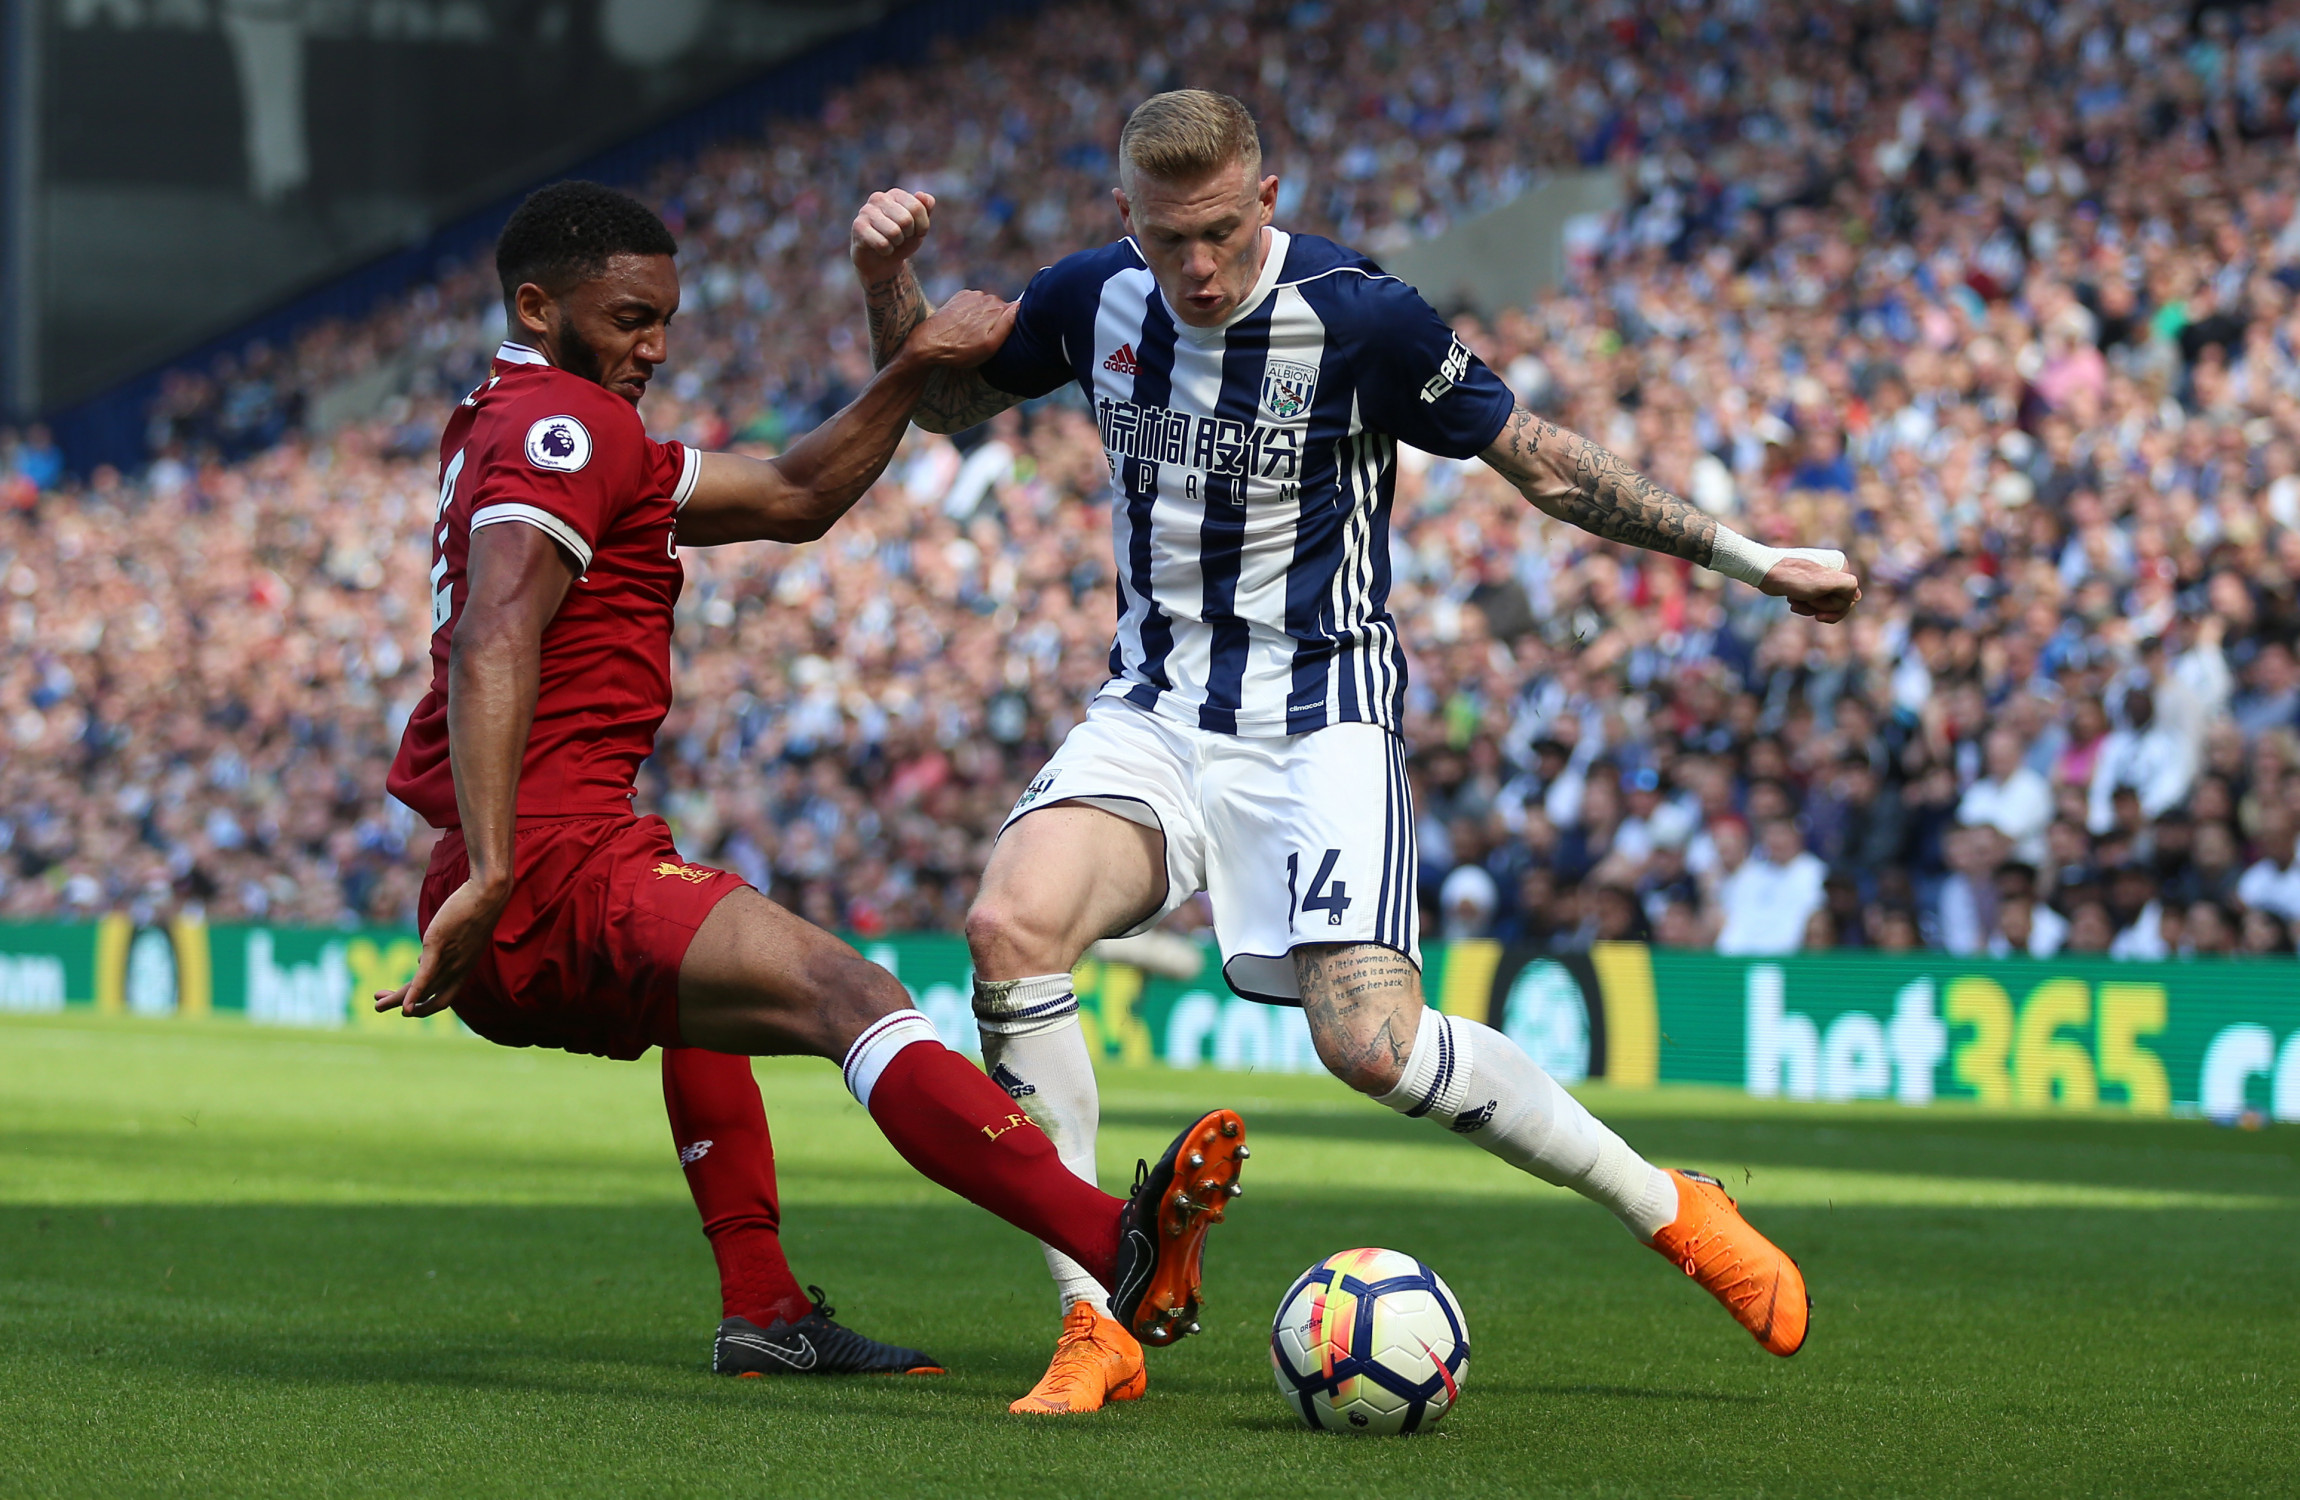 West Brom boss Moore keeping hush-hush on future